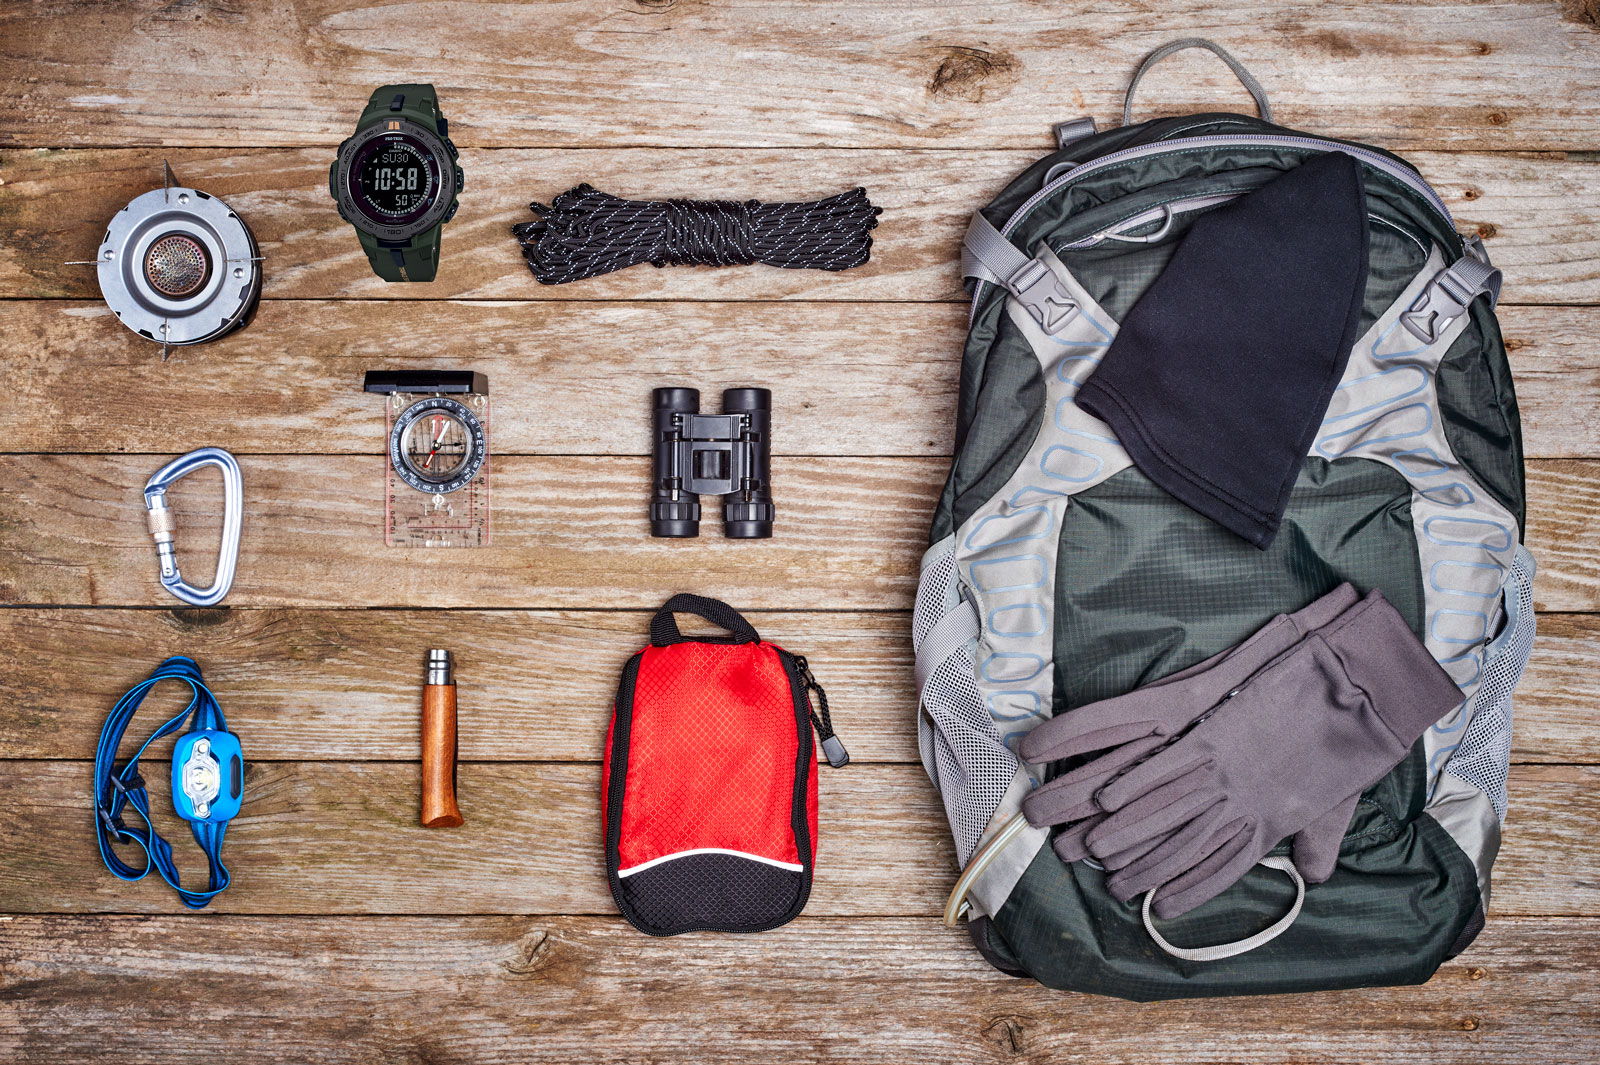 [Live Photos] Organize Hiking Gear At Home with ProTrek PRW-3100Y-3